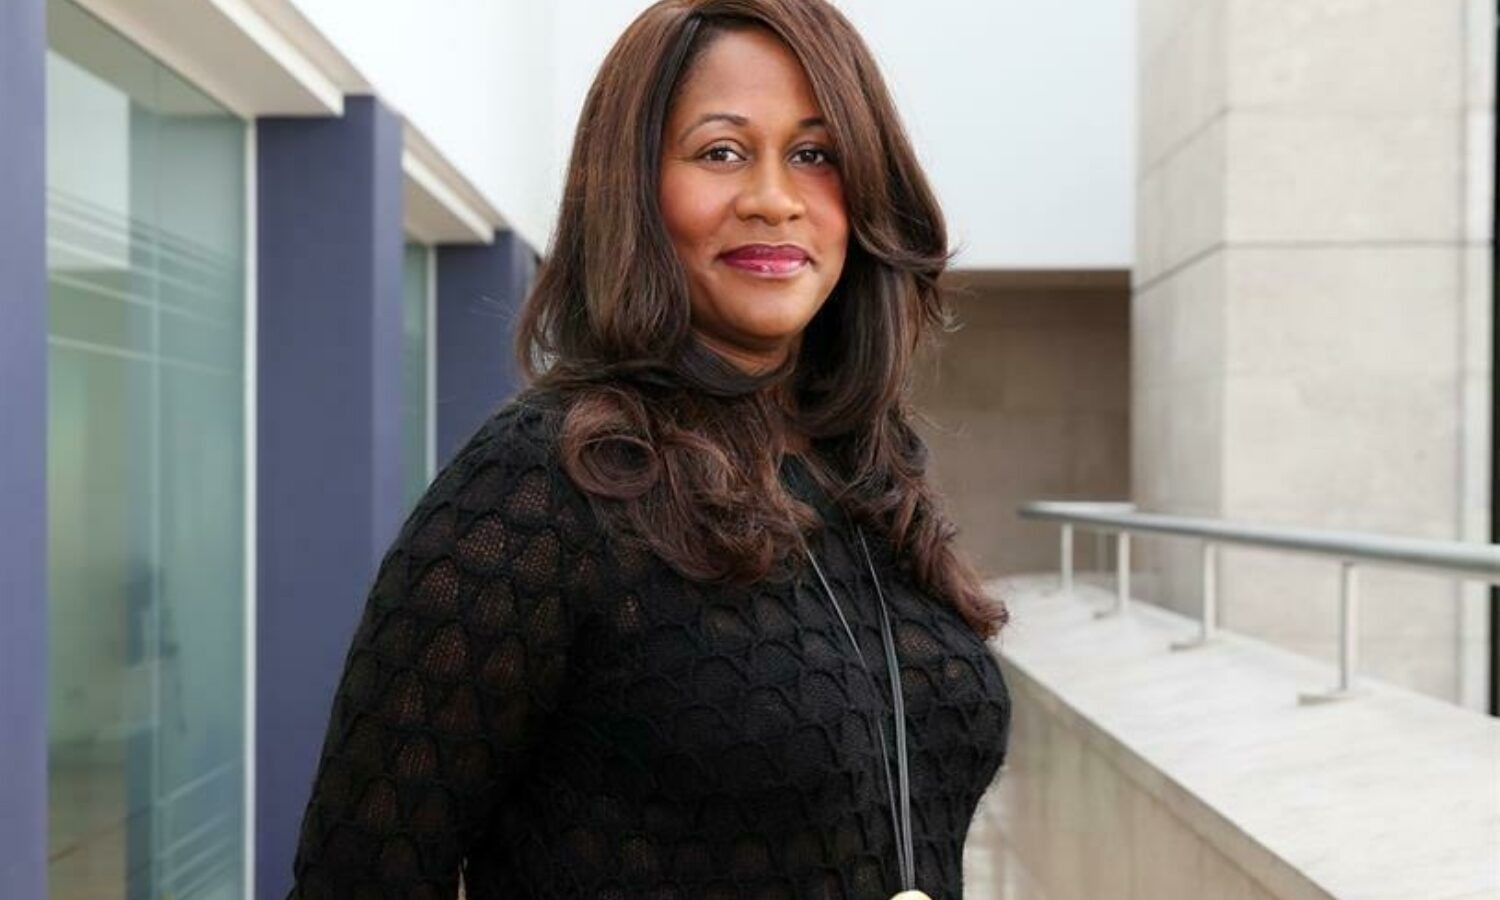 11 10 18 Karen Blackett appointed by the Prime Minister as race equality business chair